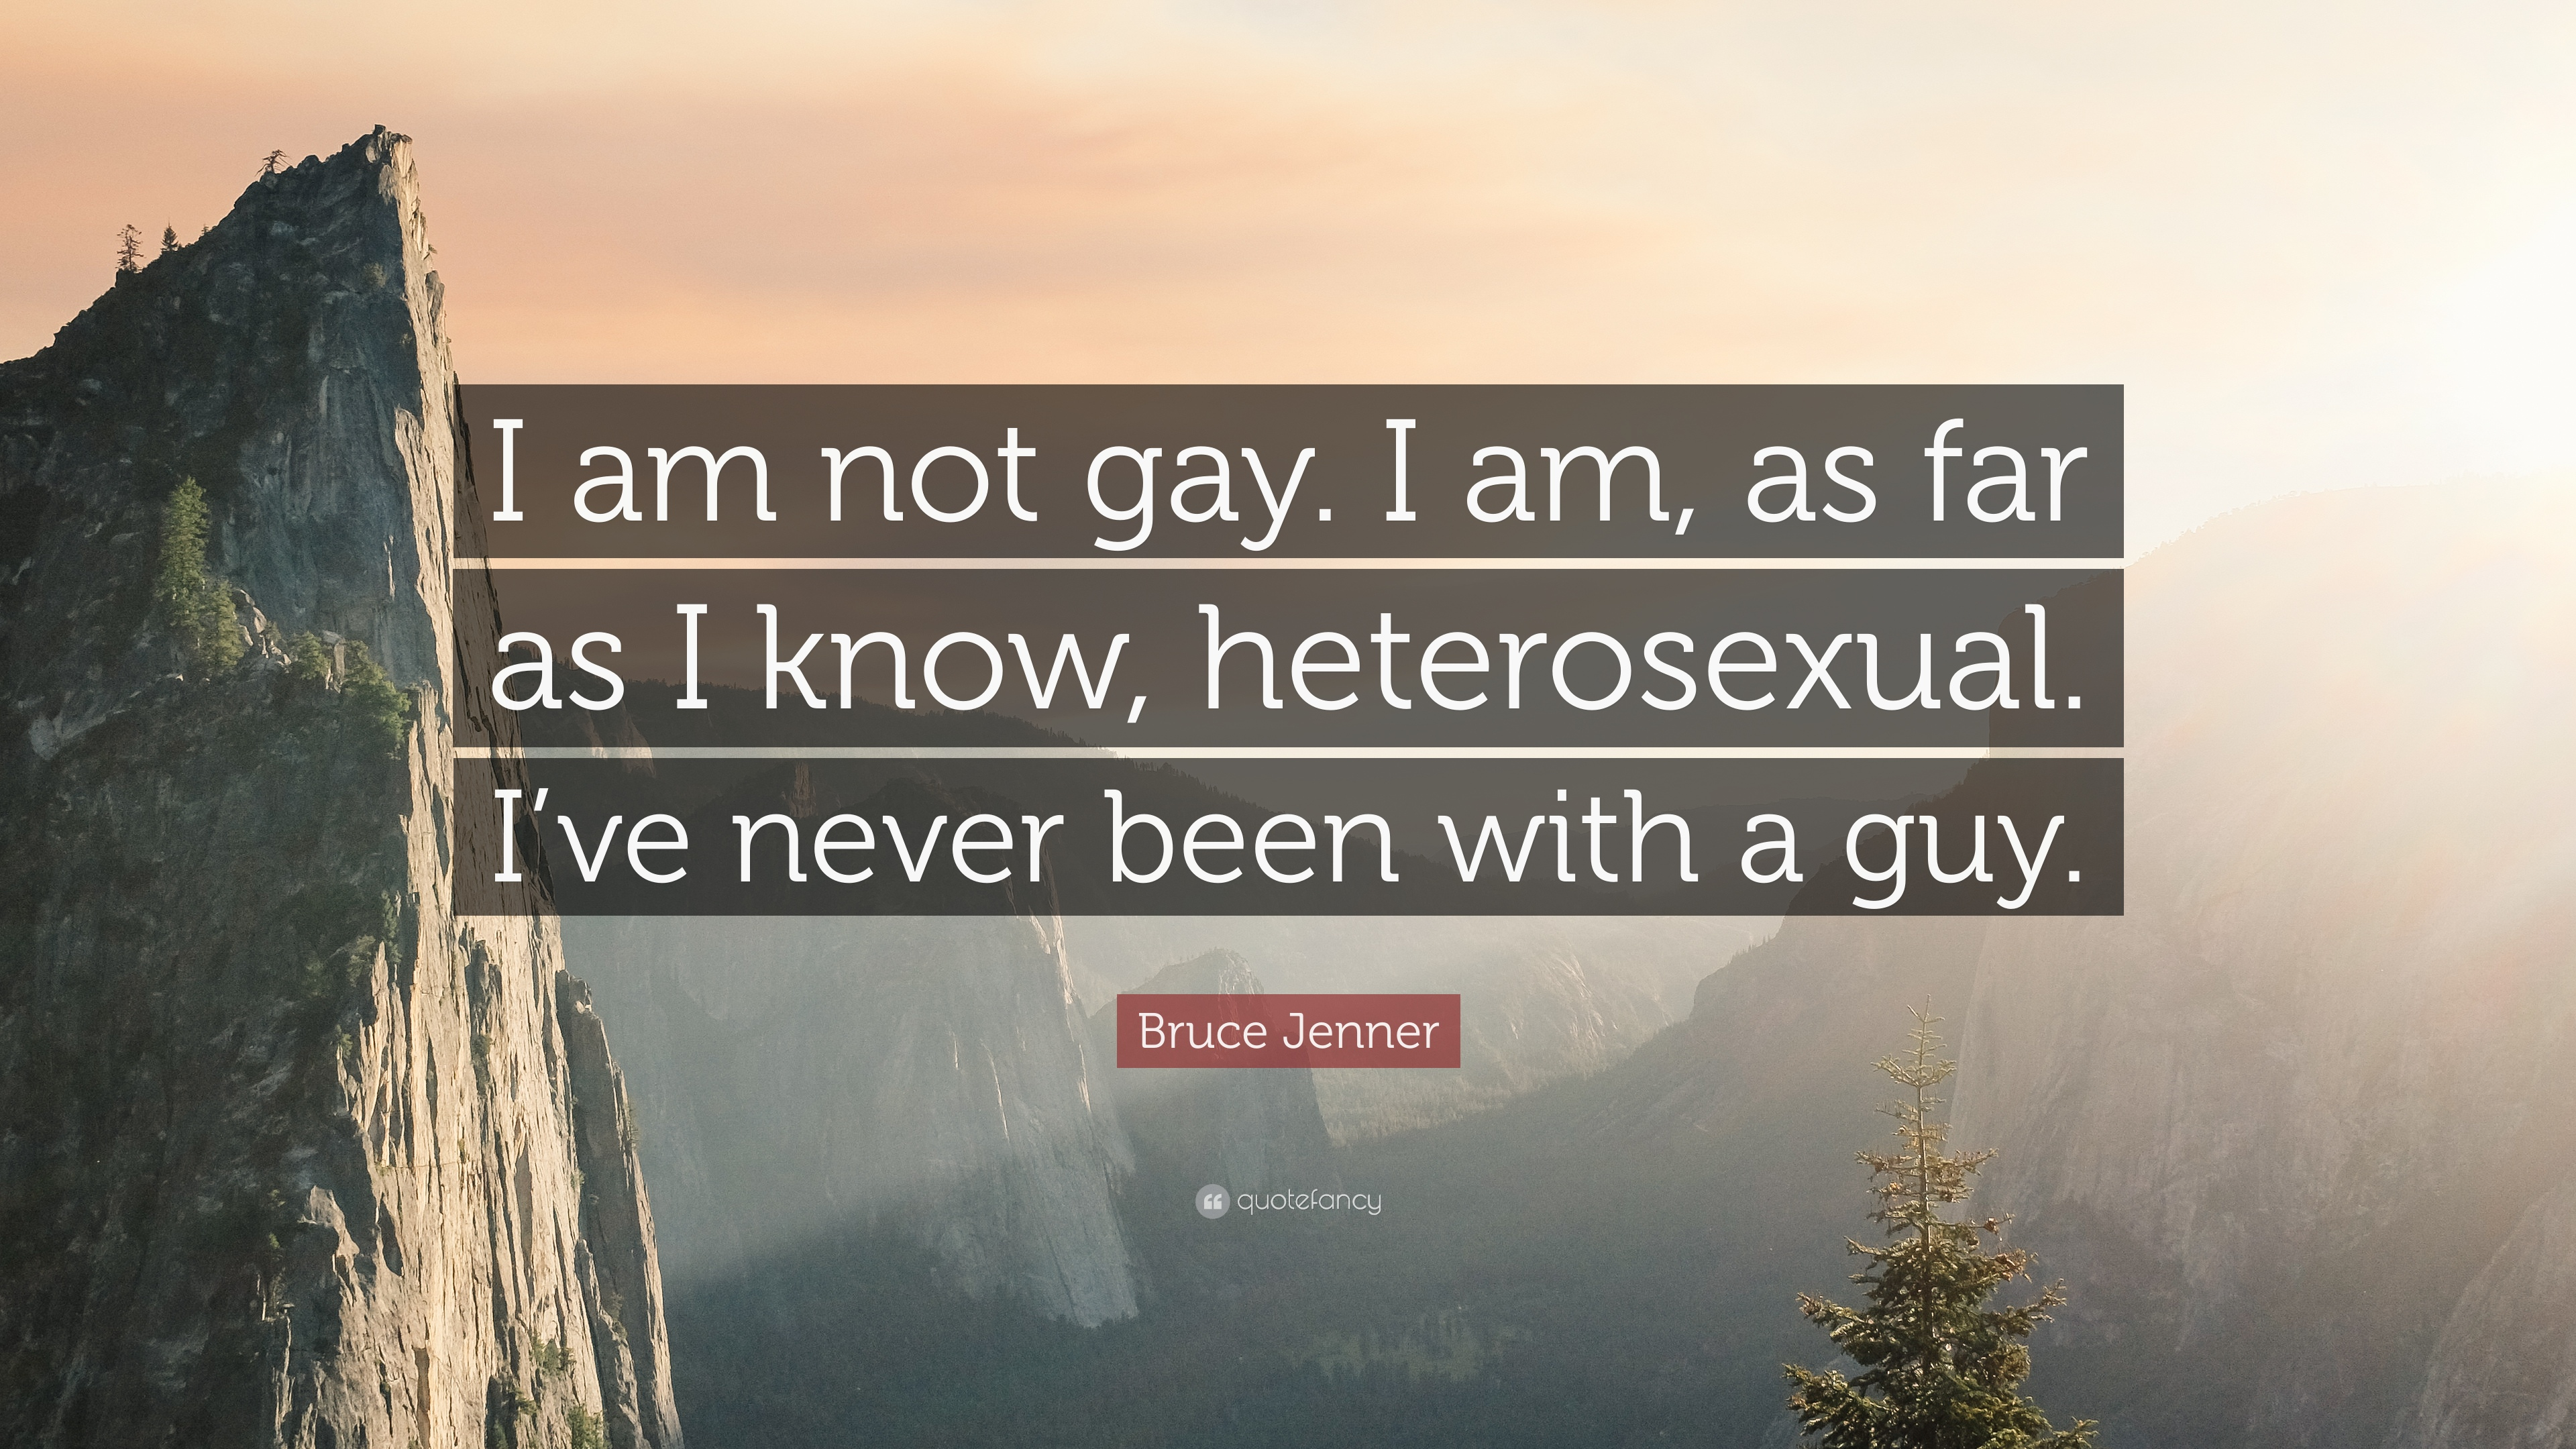 Not gay or heterosexual